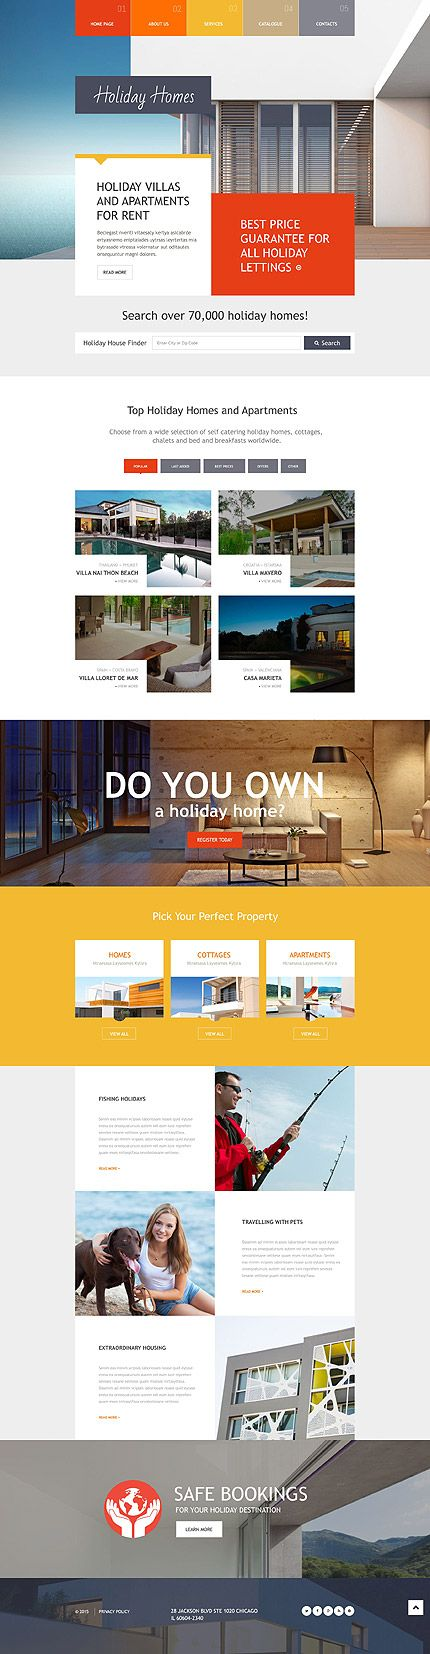 Top holiday homes and apartments. Good design.